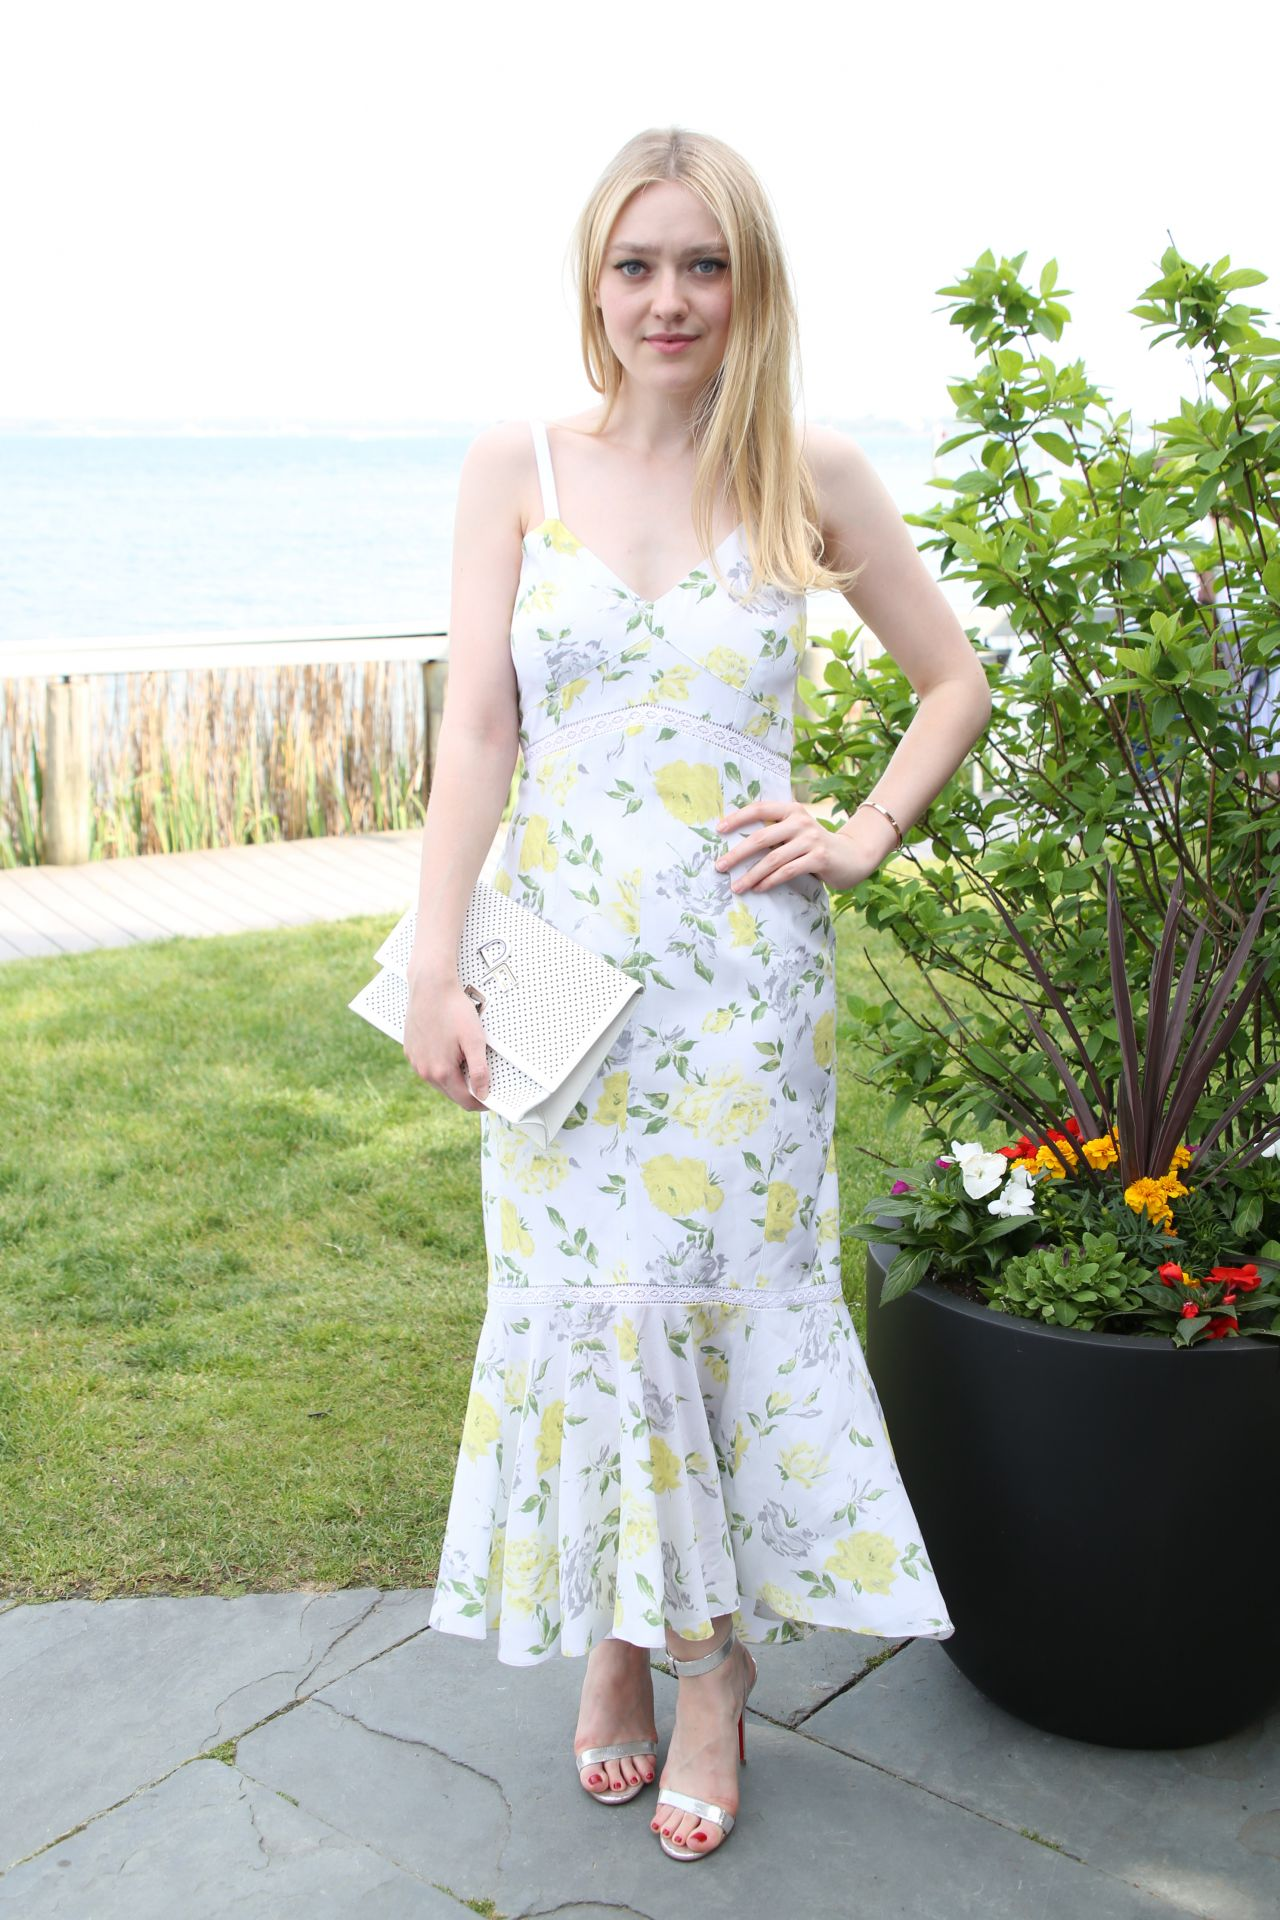 http://celebmafia.com/wp-content/uploads/2018/05/dakota-fanning-dujour-magazine-annual-memorial-day-party-in-new-york-05-26-2018-3.jpg